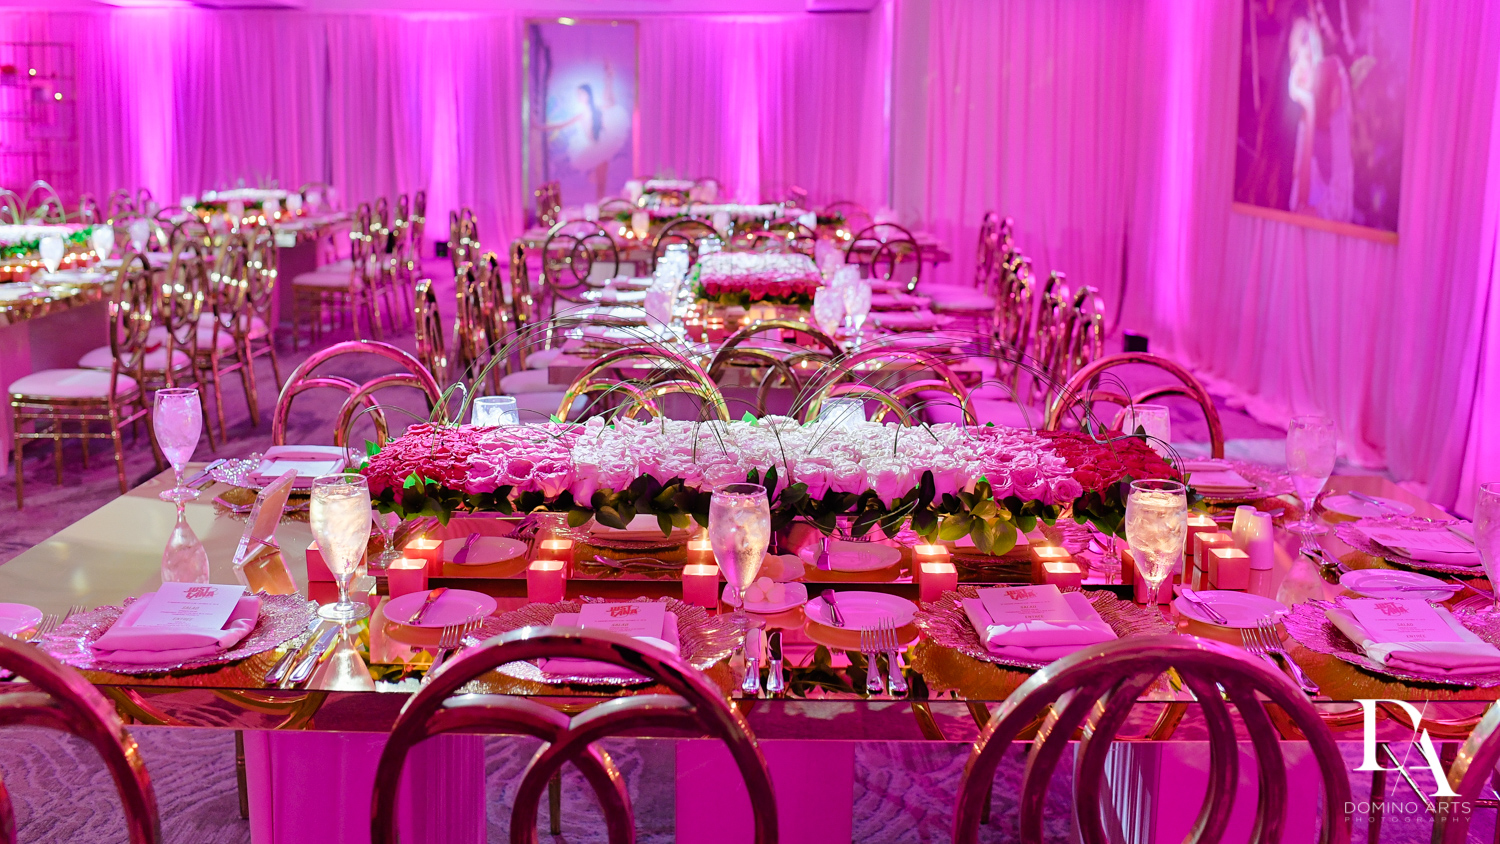 Bat Mitzvah Pink flowers and candles decor at Saint Andrews Country Club South Florida by Domino Arts Photography